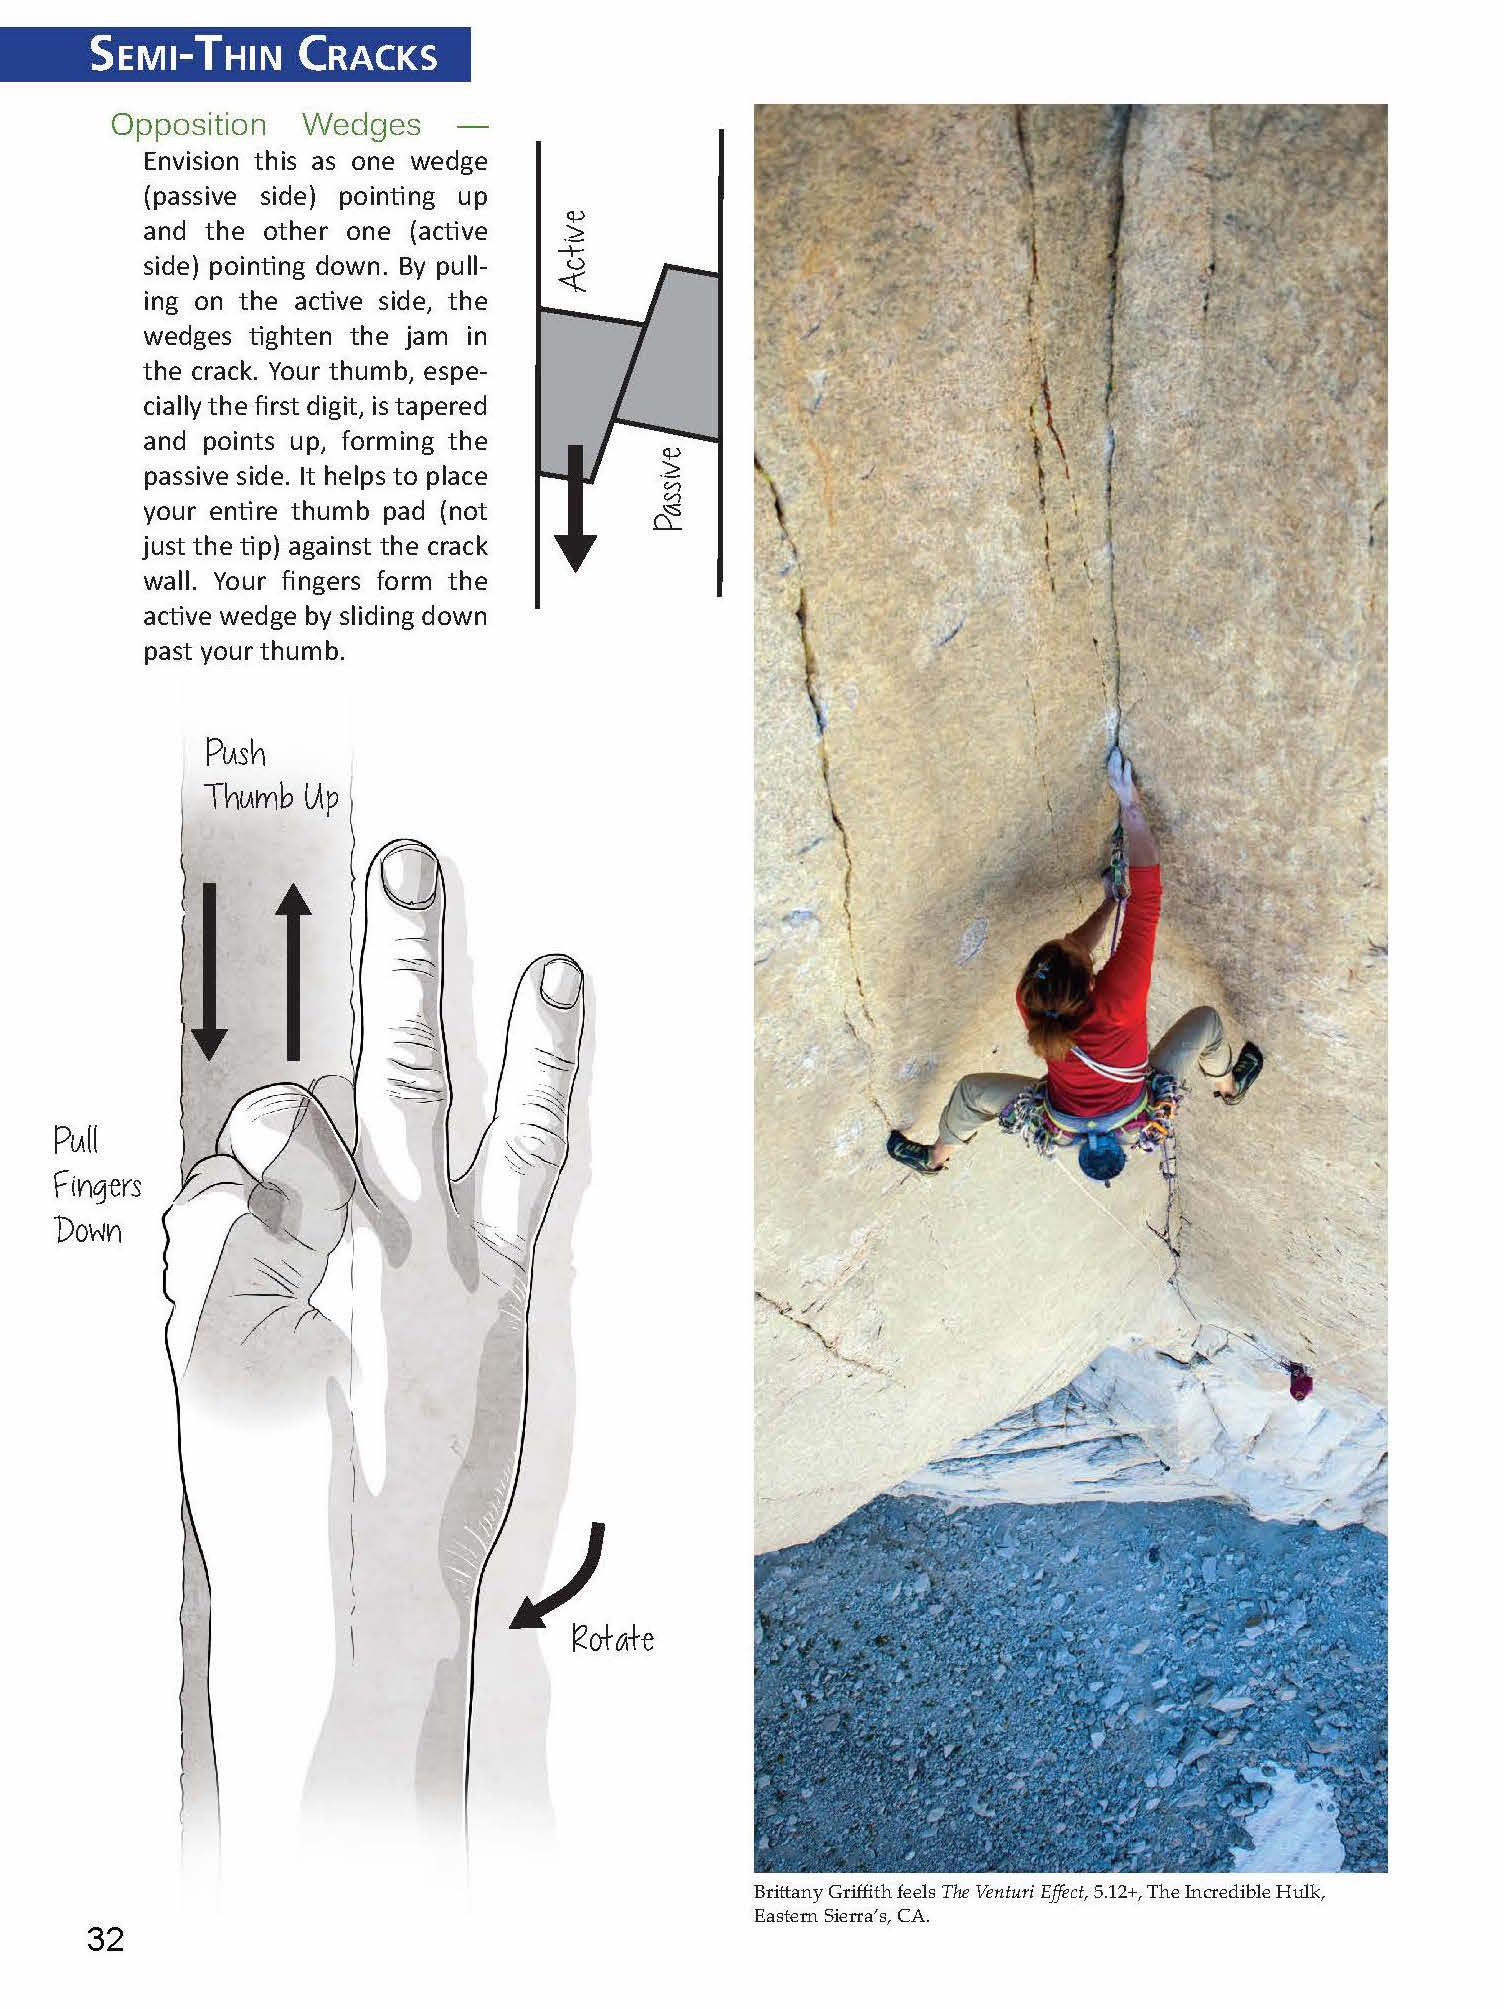 Crack Climber's Technique Manual - Tutorials and Tips